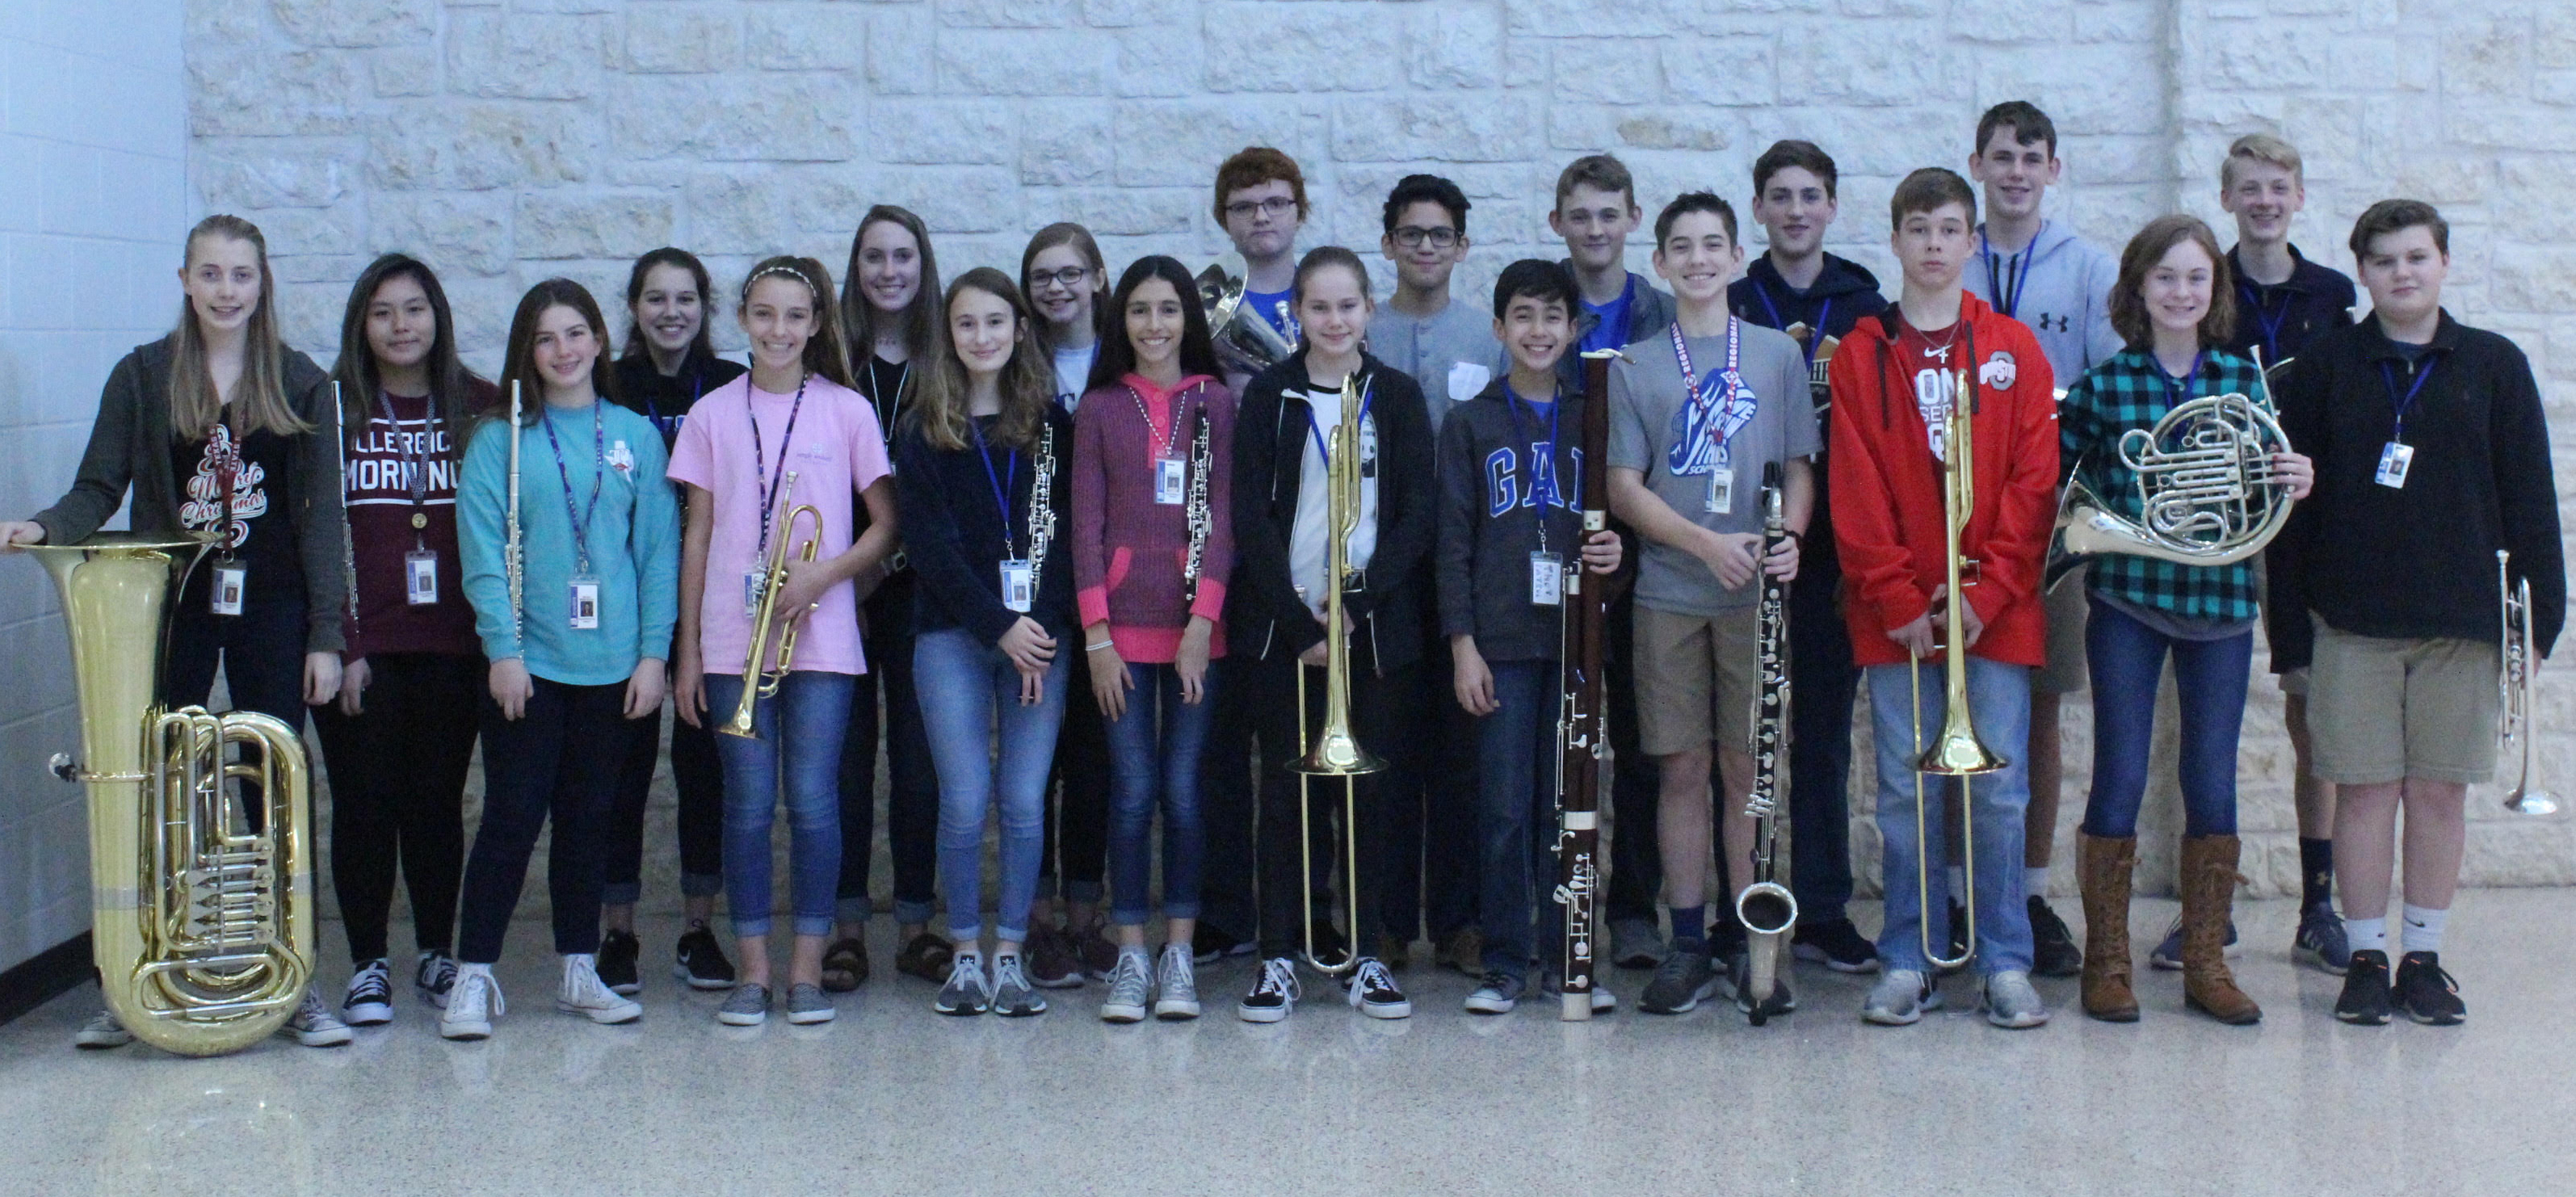 ORMS students named to region, district honors bands in November 2018